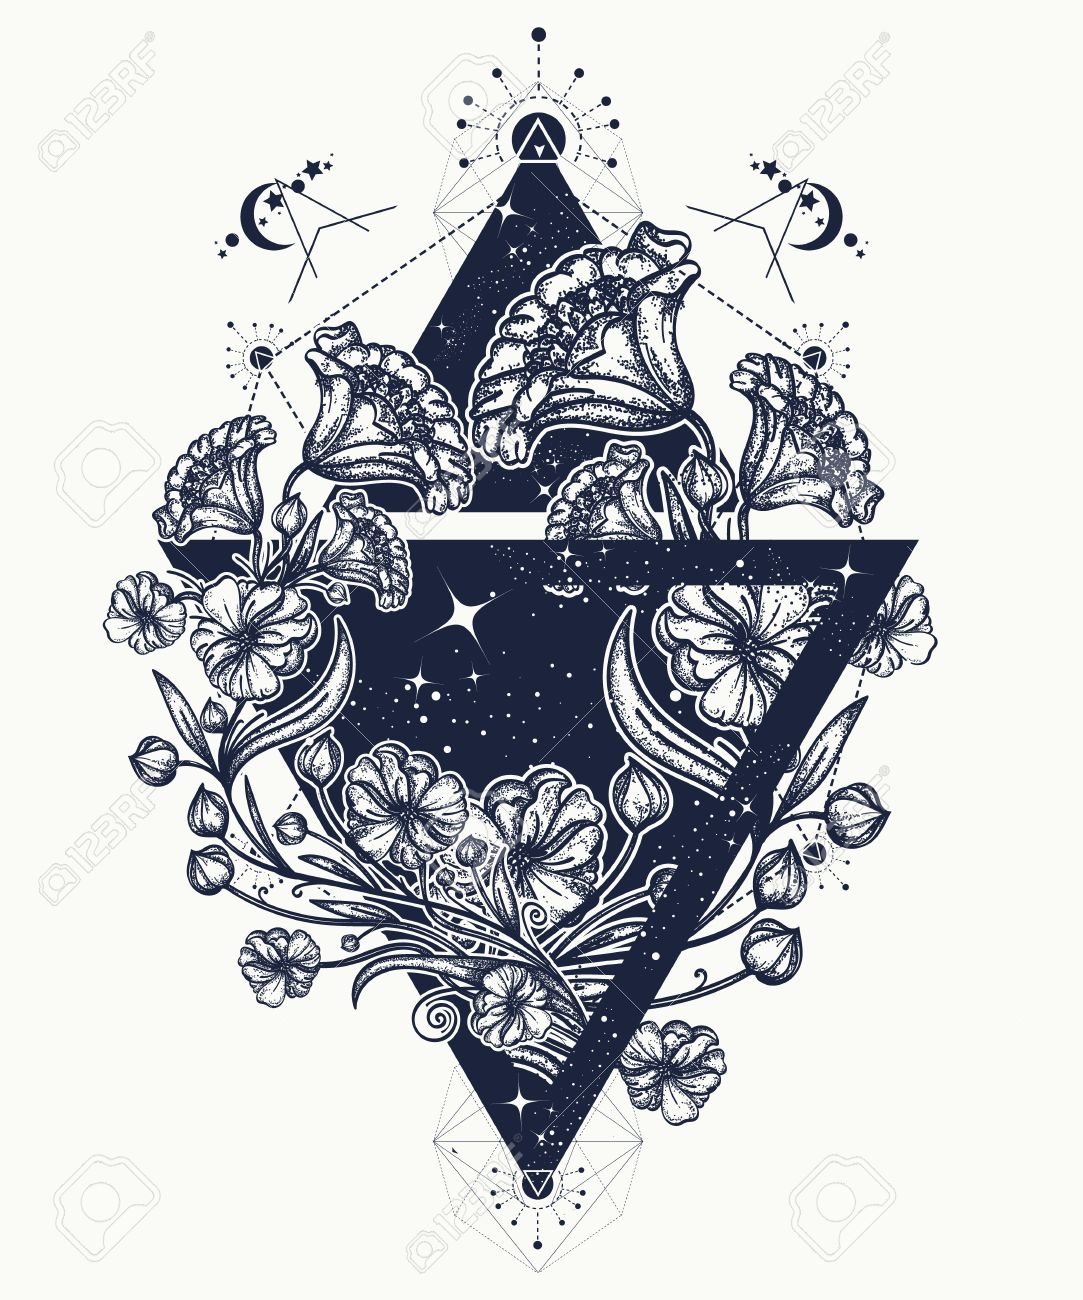 Flowers In A Triangle Tattoo Art Graceful Flowers In Mystical